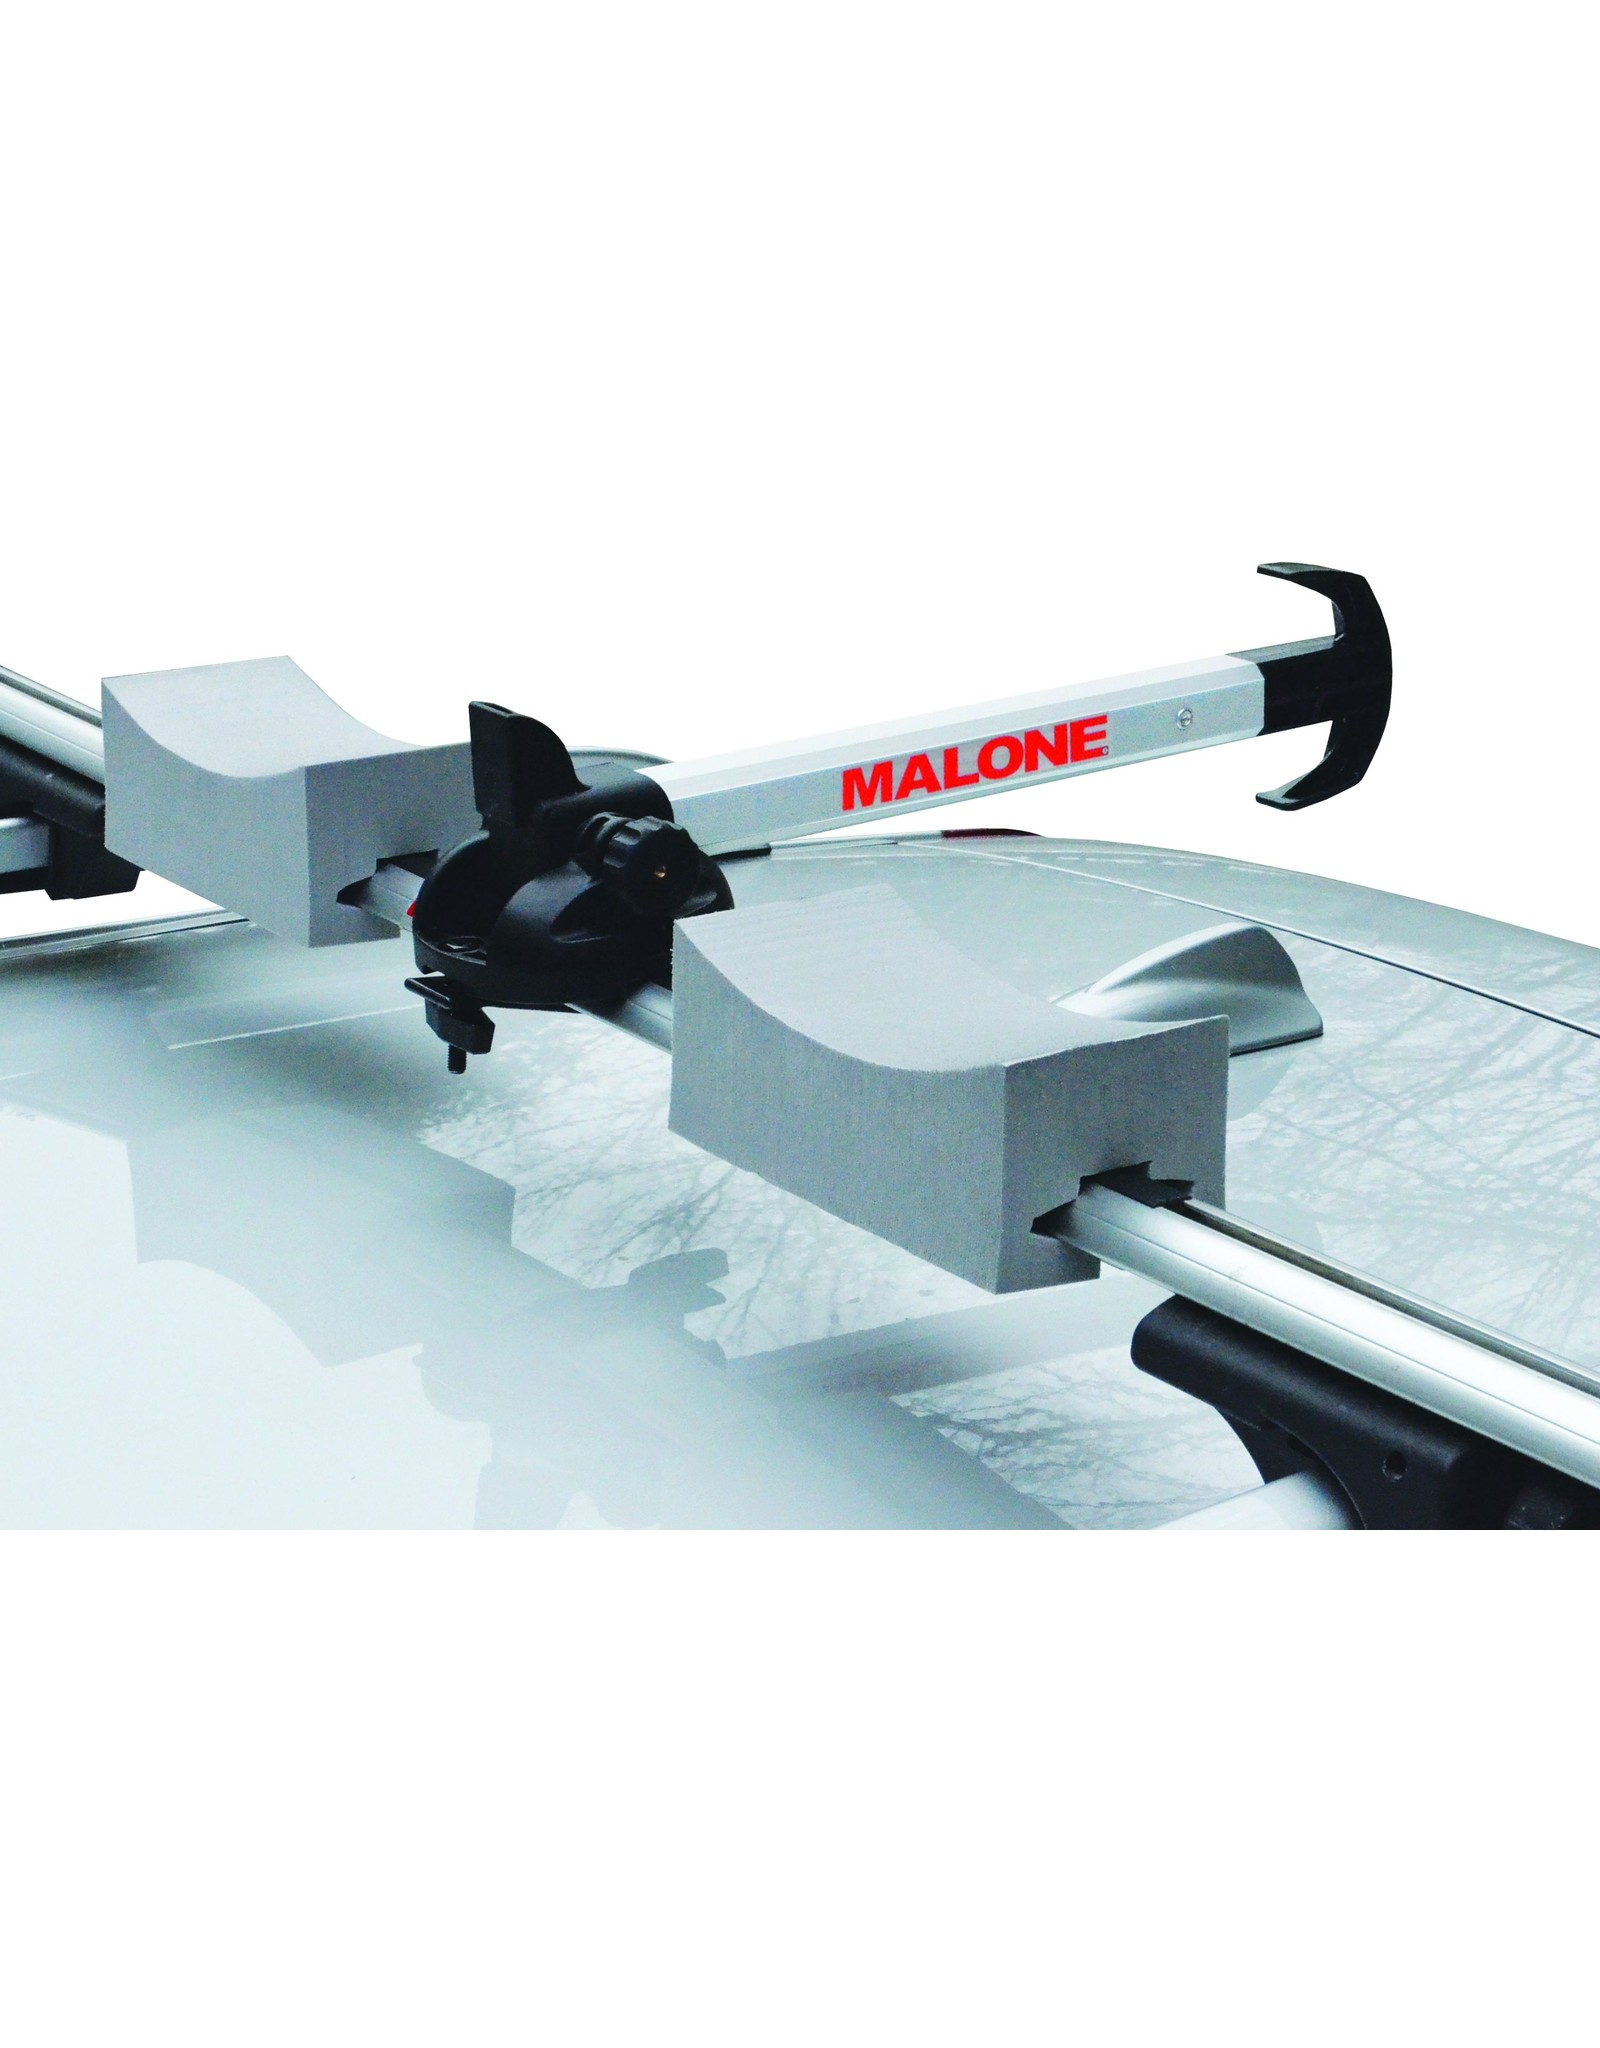 Malone Auto Rack Malone Stax Pro2 Kayak Carrier w/ Tie-Downs